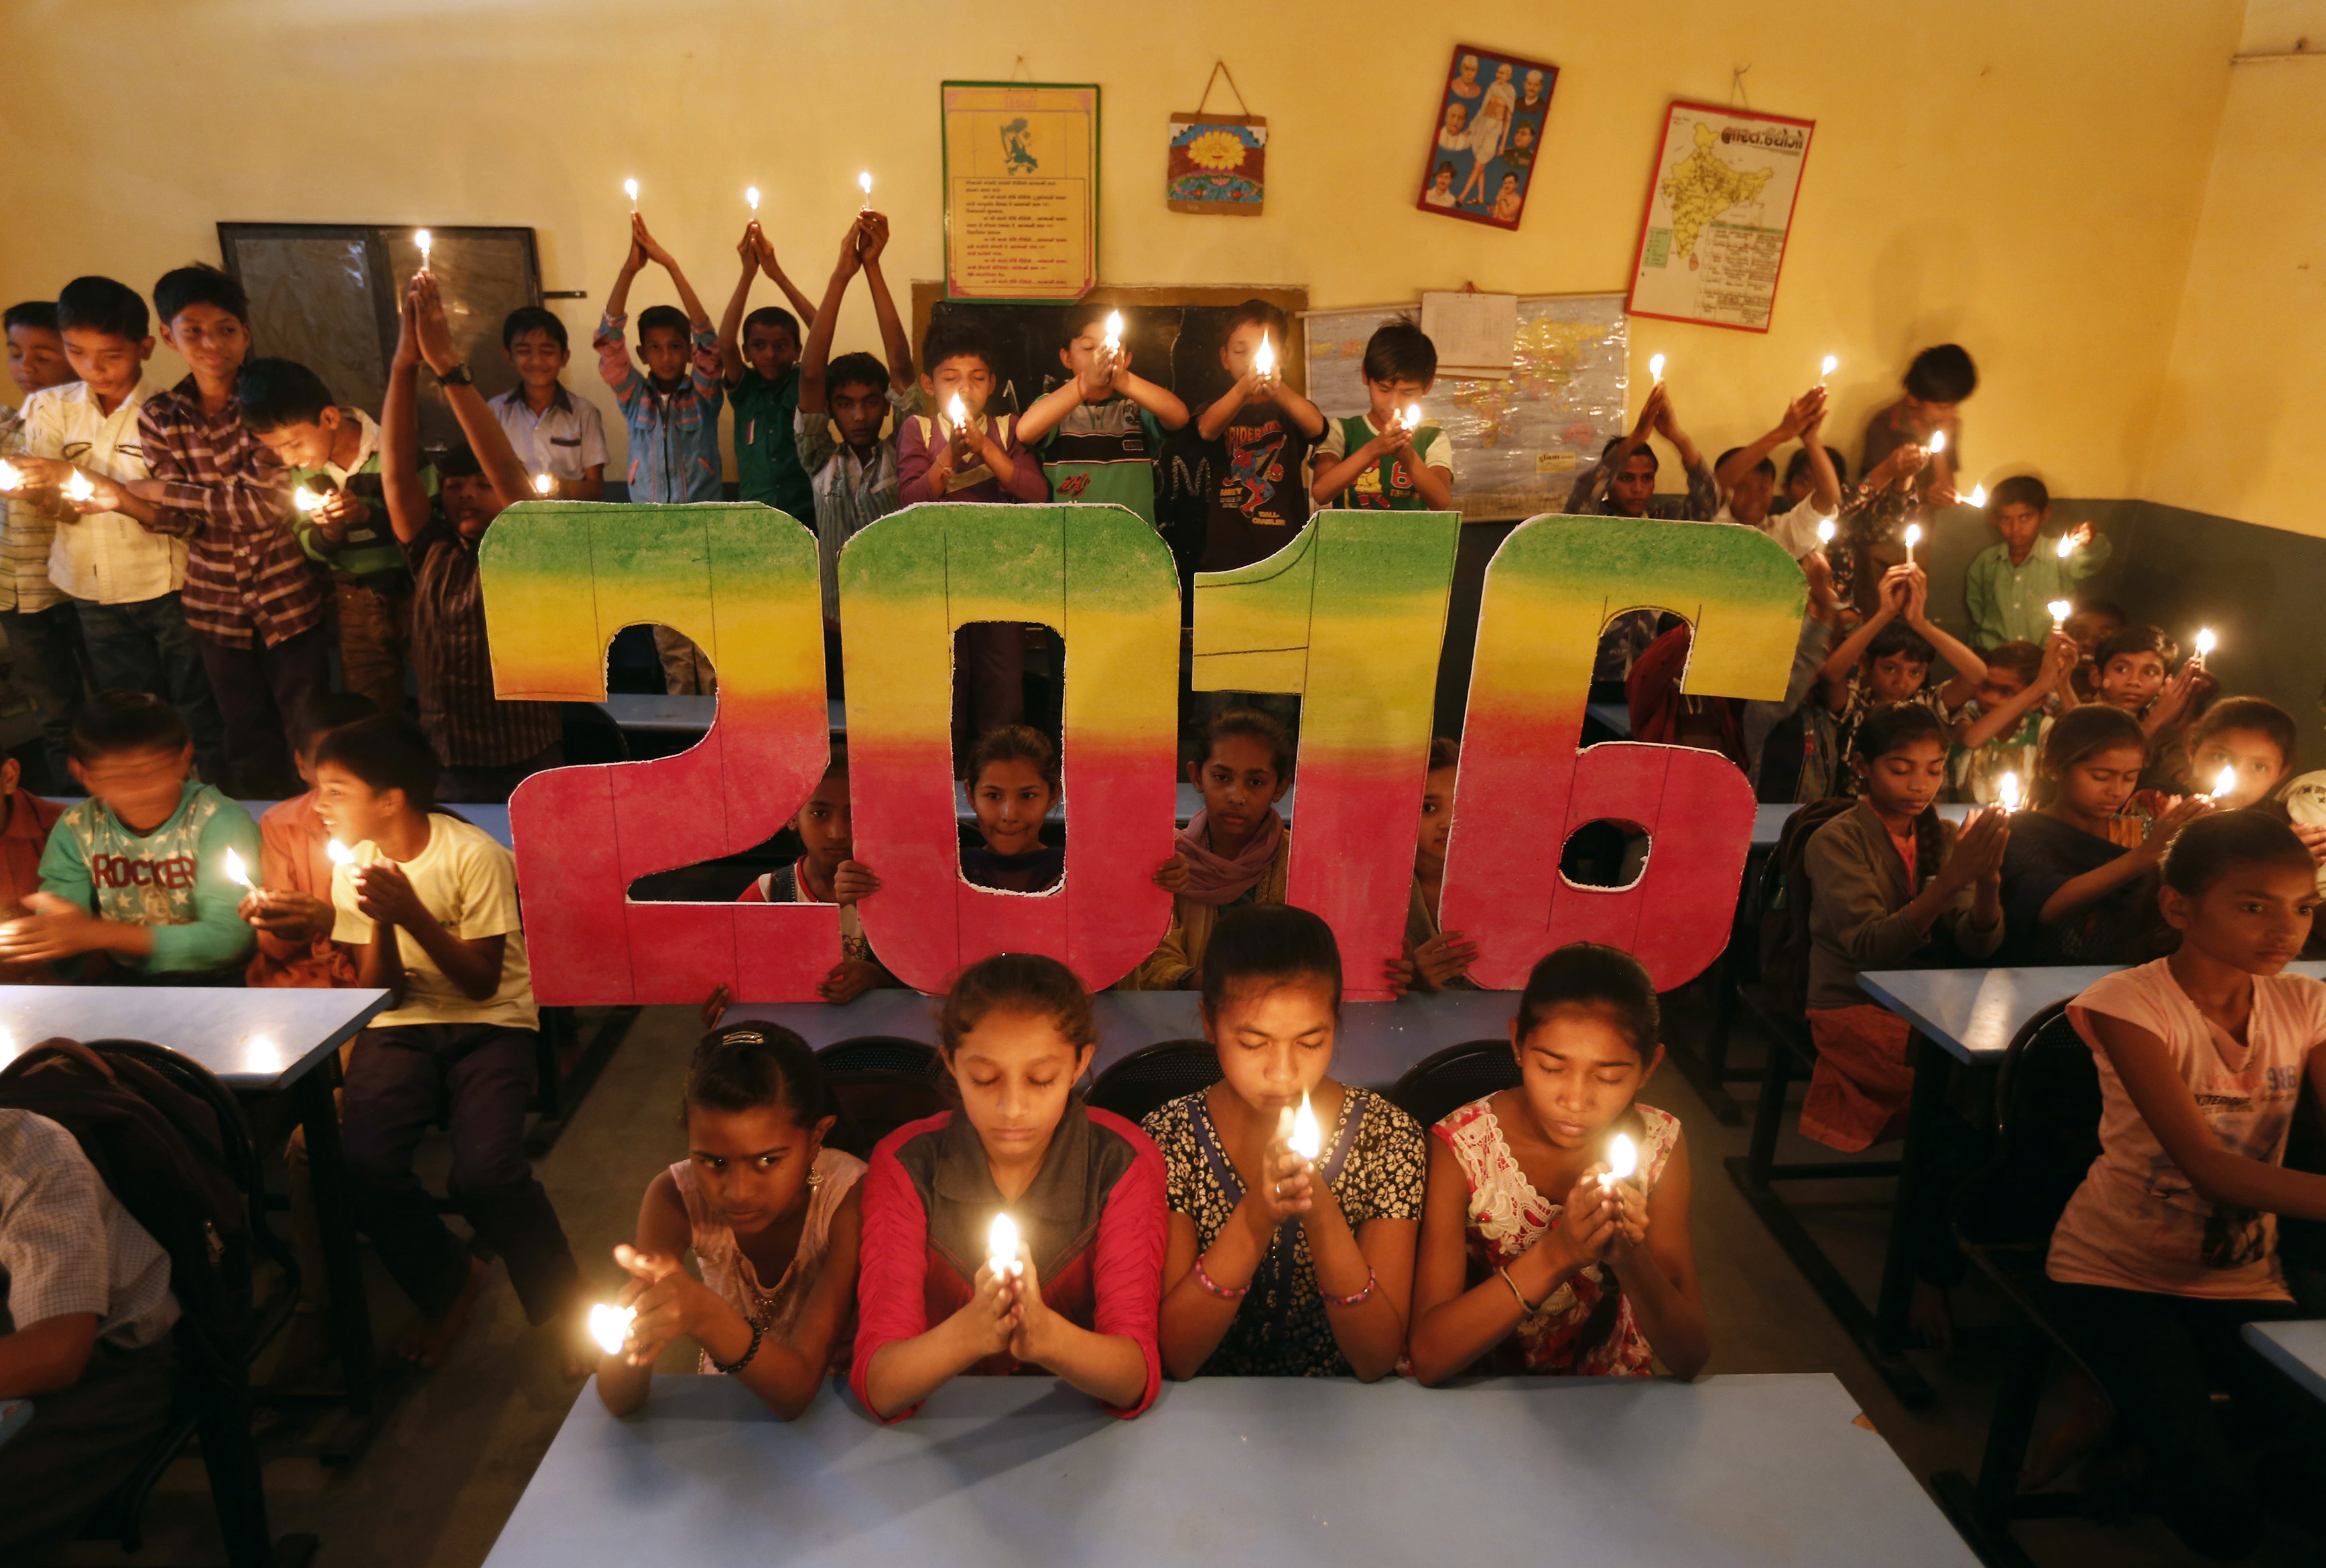 School students offer prayers for the world peace in the upcoming year of 2016 in Ahmedabad, India, on Dec. 31, 2015. Photo by Amit Dave/Reuters